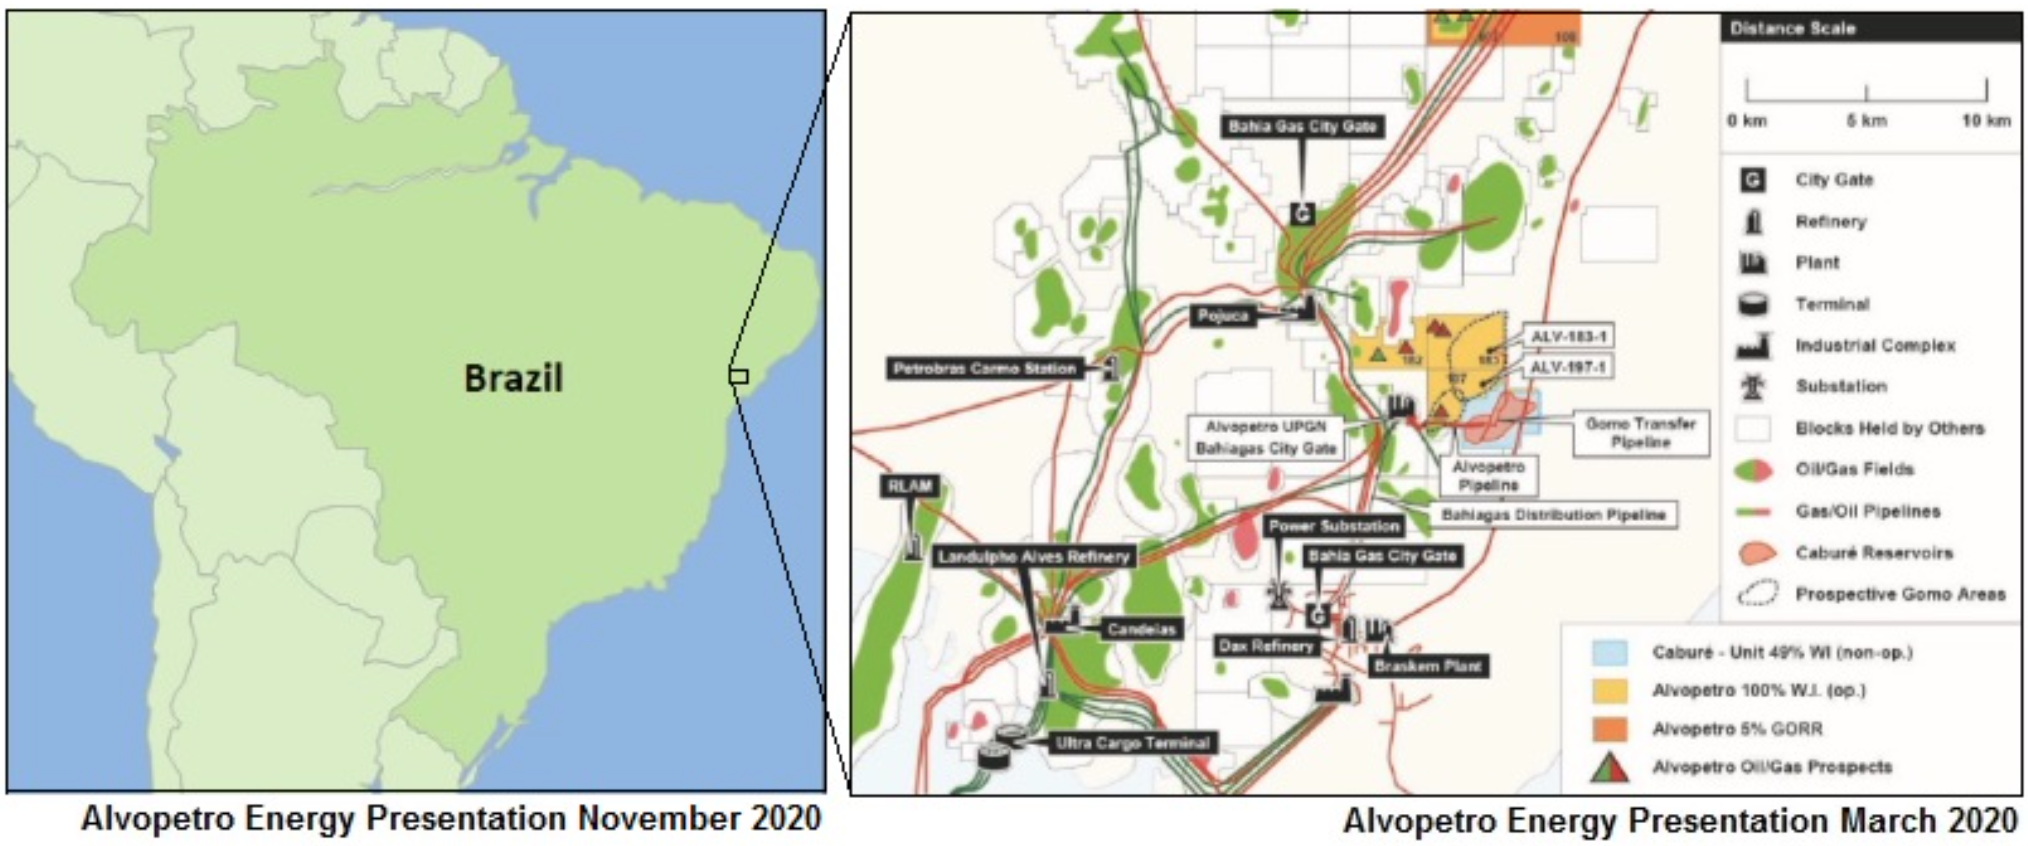 ALVOF: Alvopetro Energy – Monthly Production Increasing from the Caburé Natural Gas Project